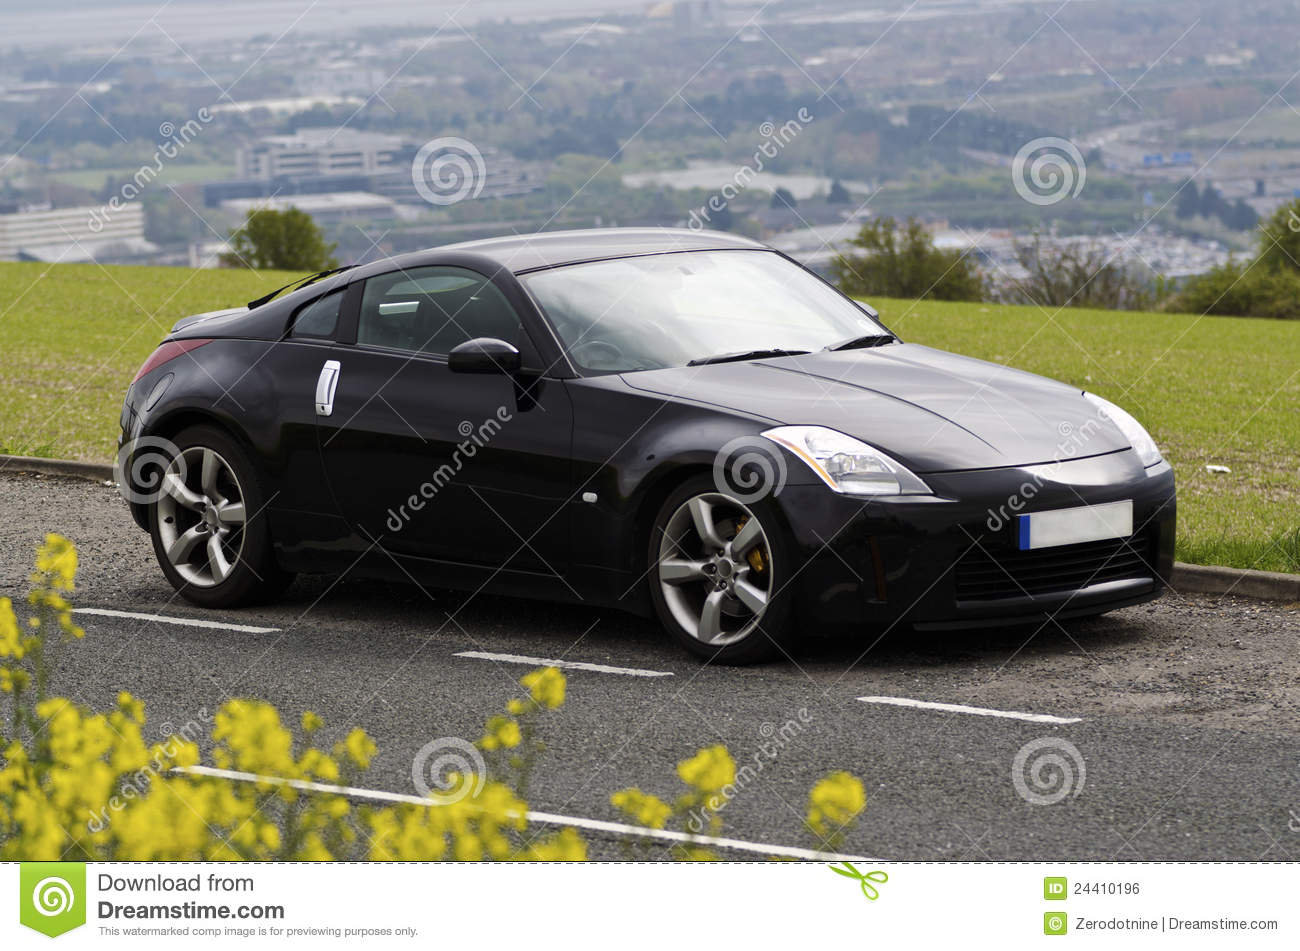 nissan z sports car editorial stock photo - image: 18111483